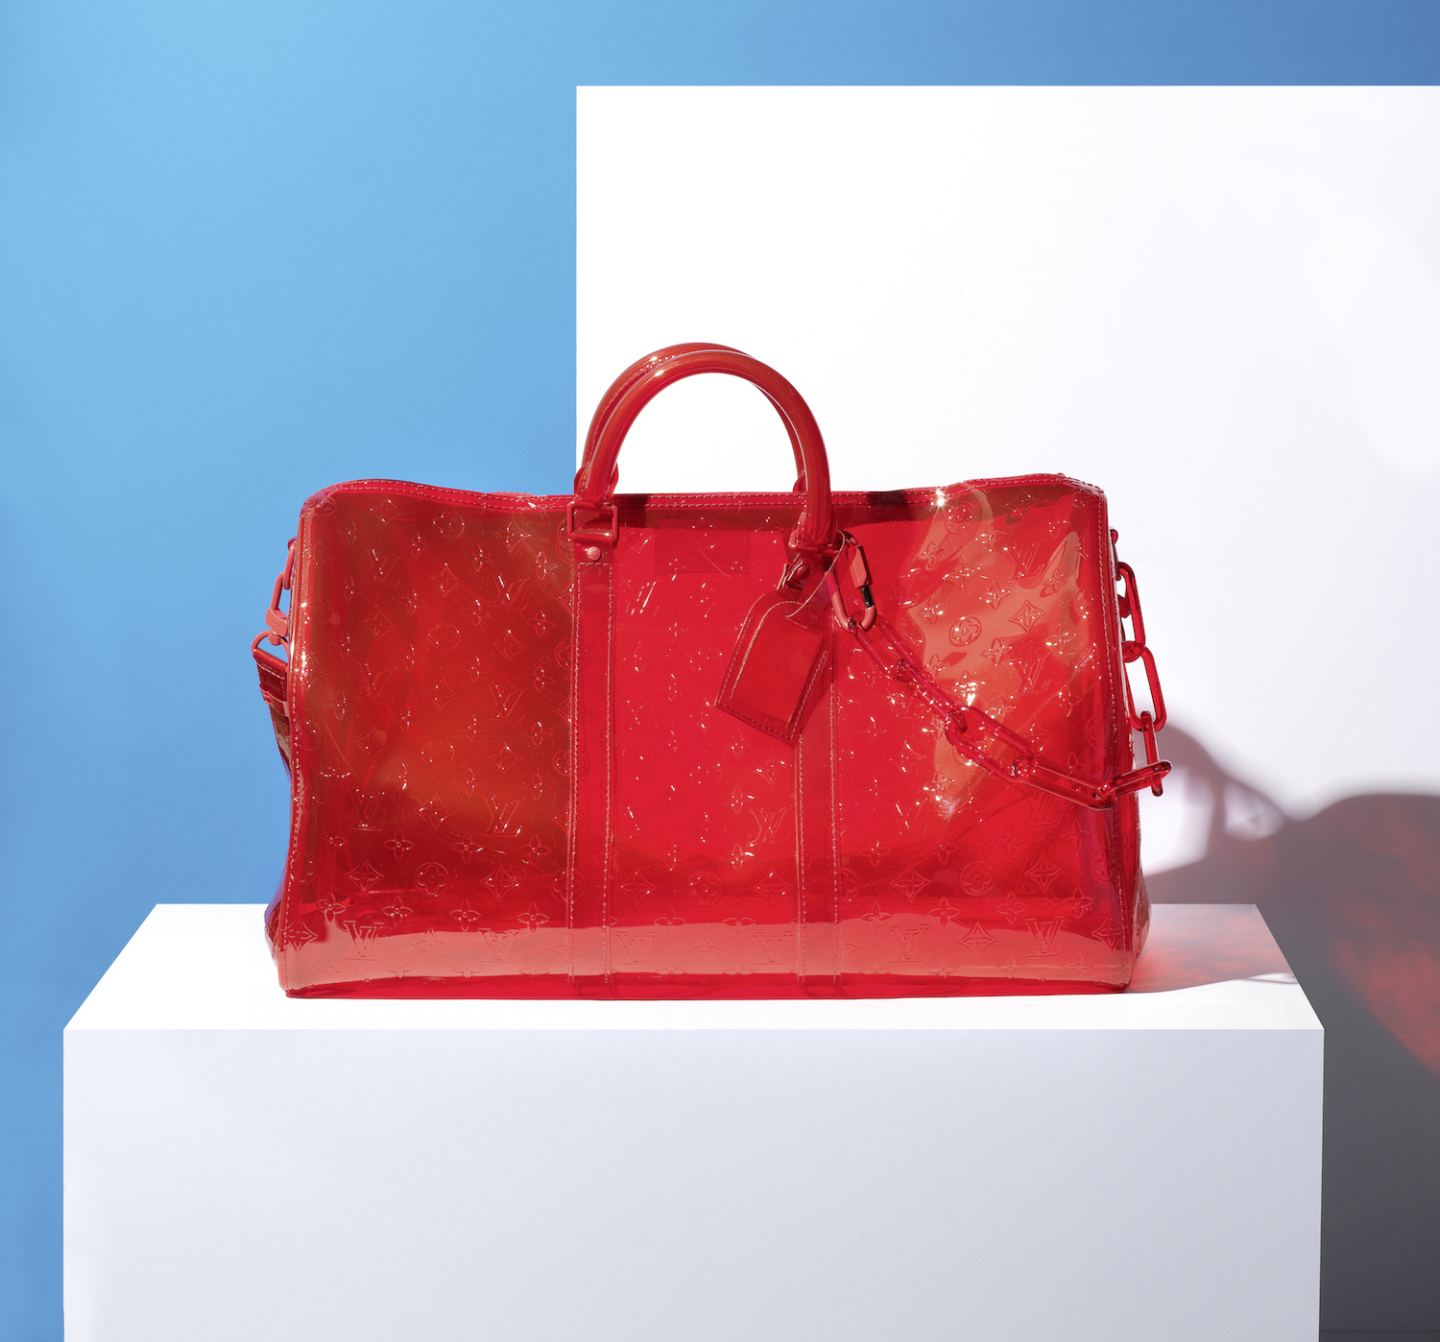 red louis vuitton hold all bag Fashion Auctions